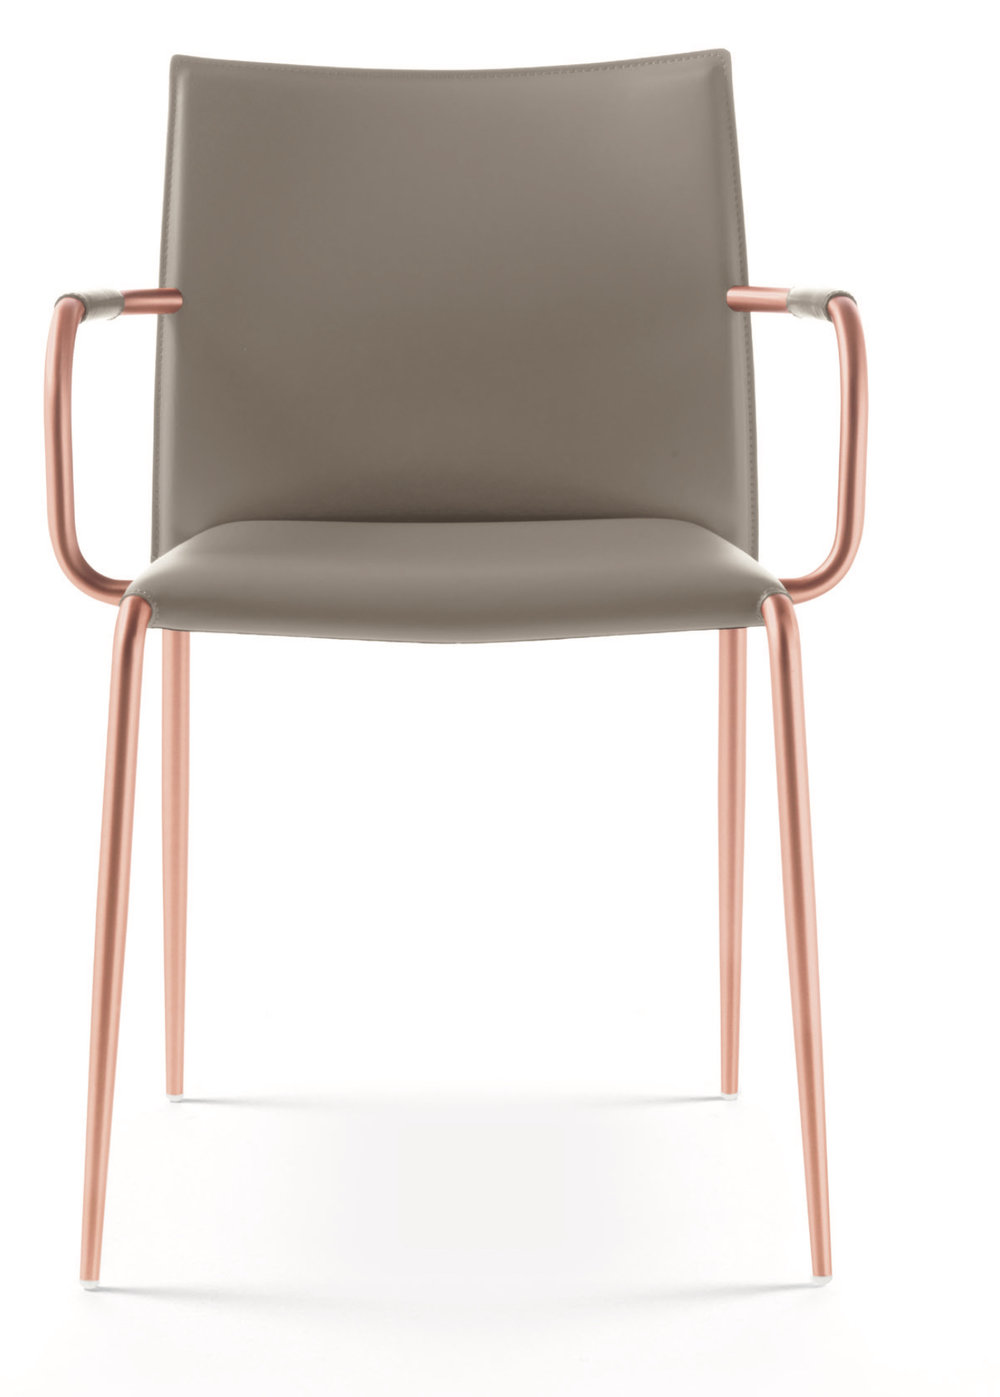 contemporary-dining-chairs-modern-leather-chrome-copper-brass-bronze-designer00003.jpeg